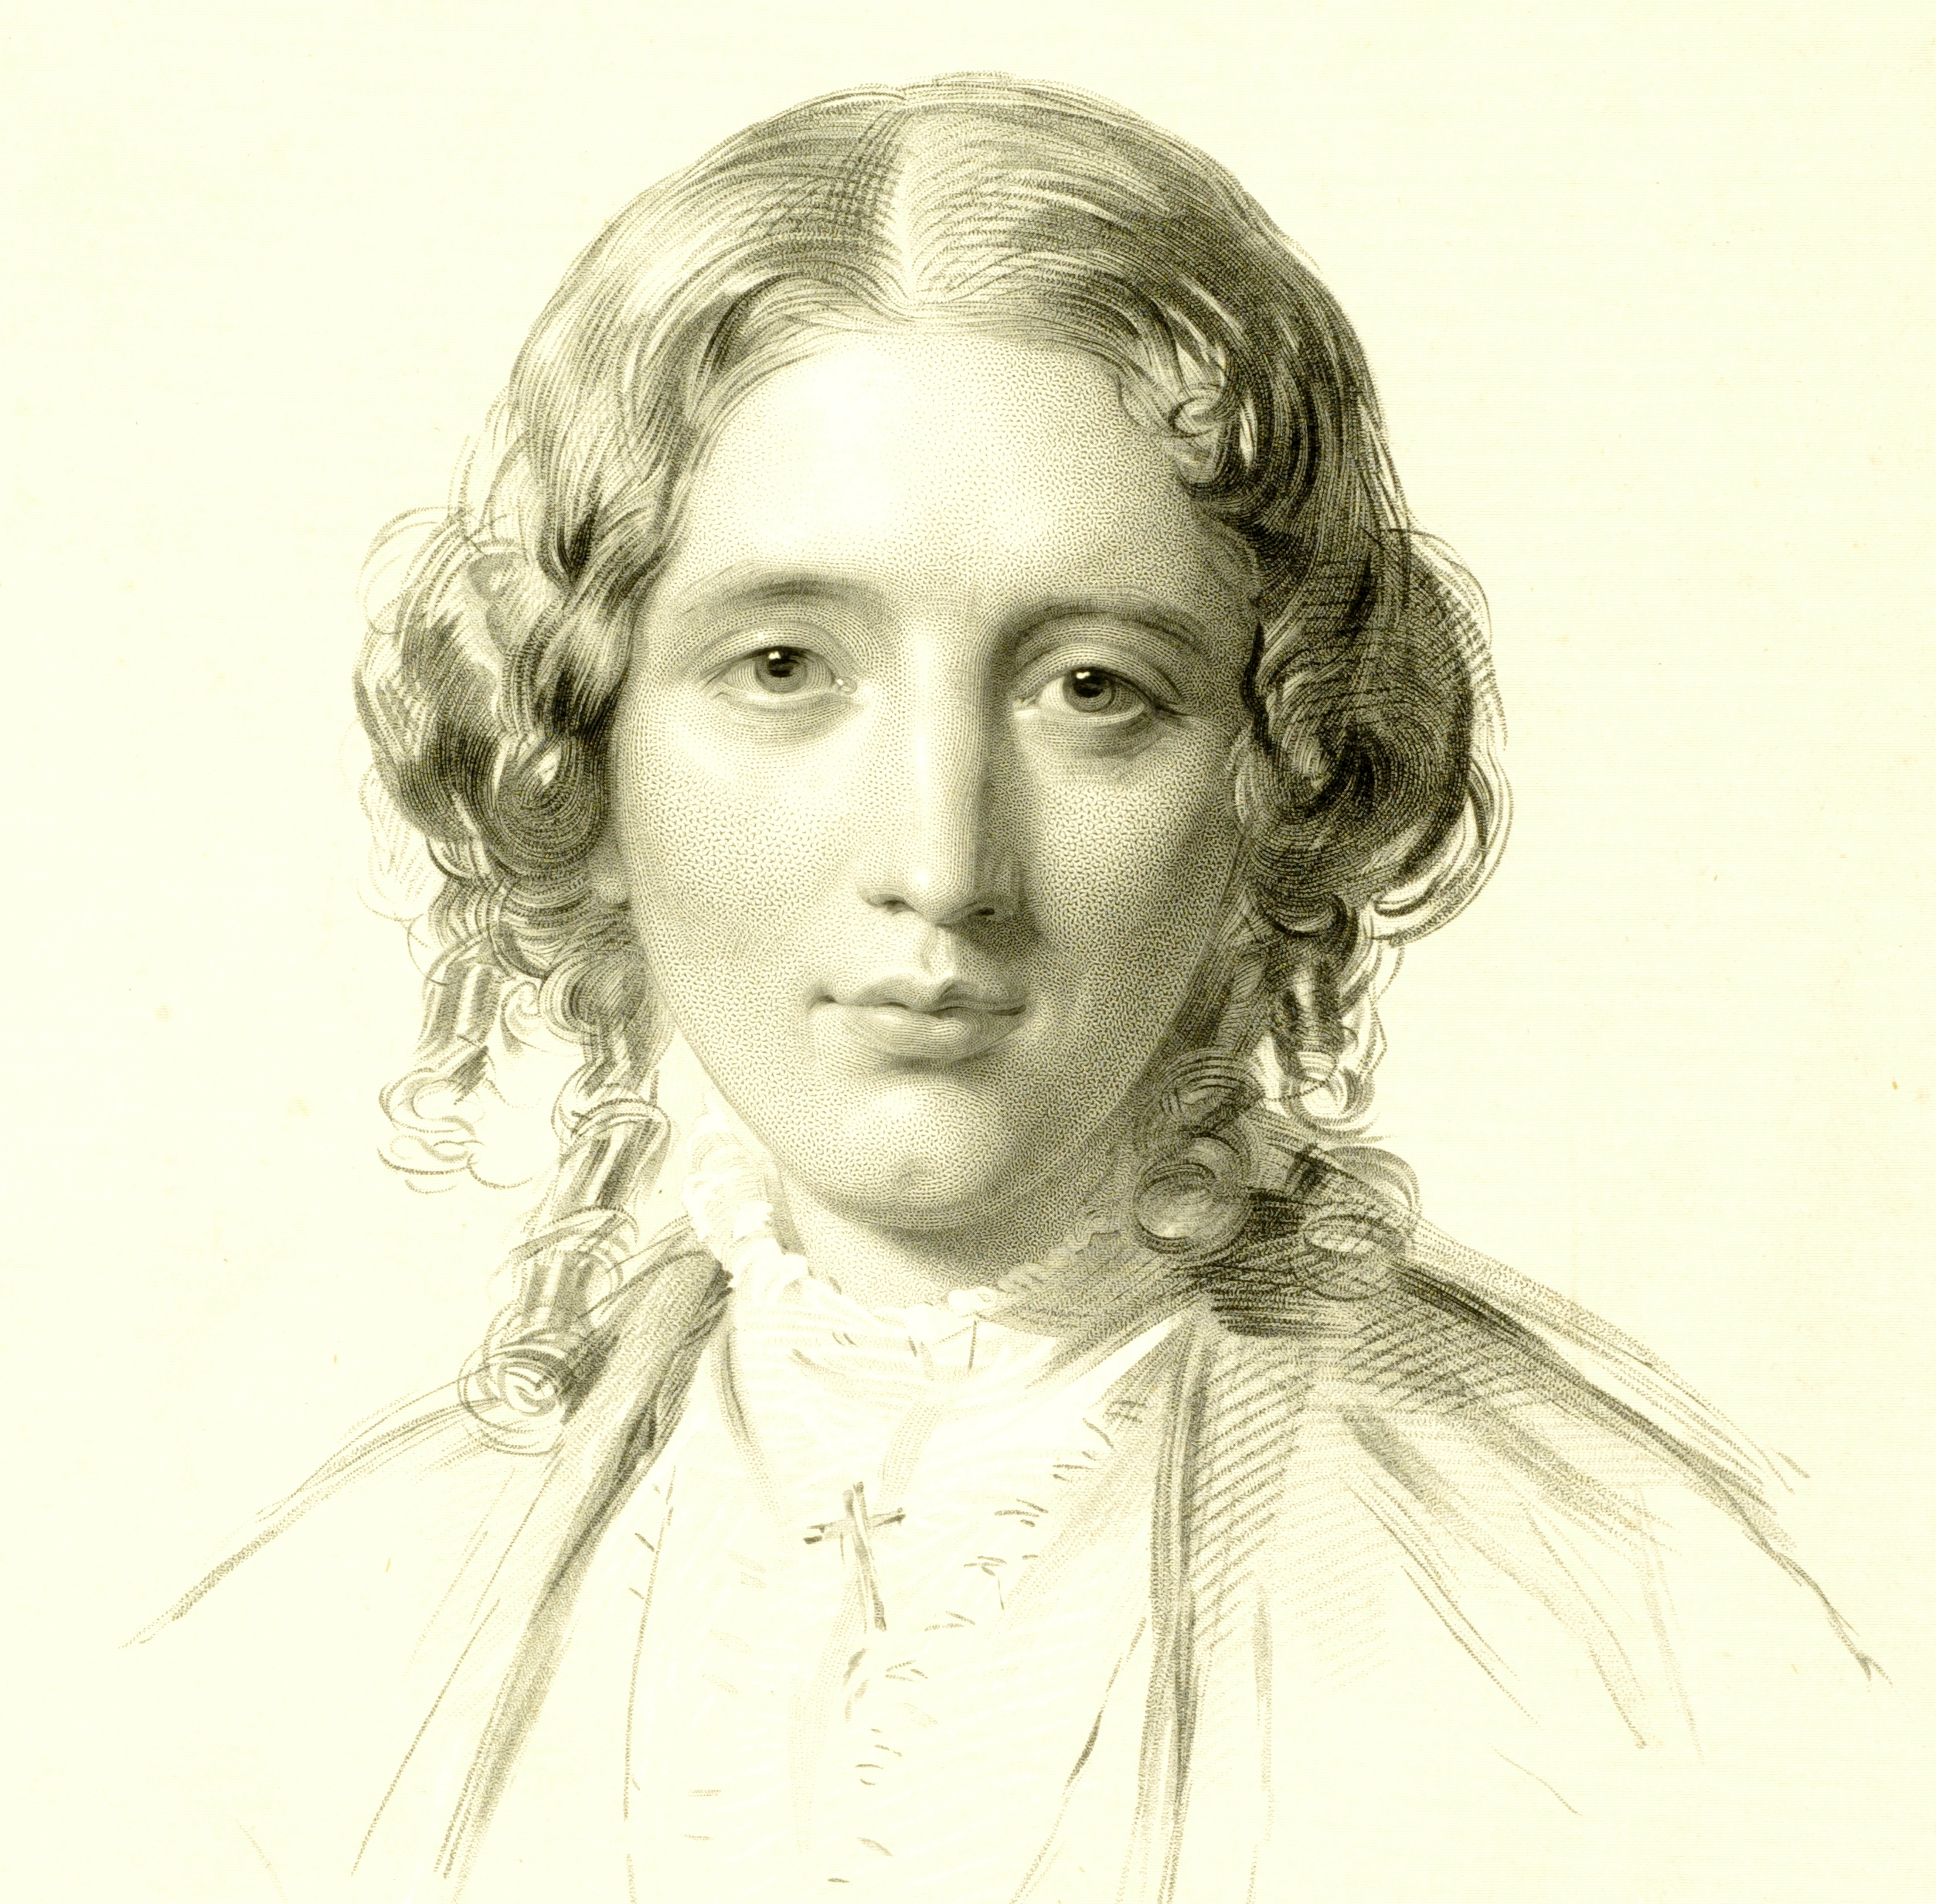 an analysis of journey a book by lucy stowe Harriet beecher stowe society scholarly organization dedicated to the study of the life and works of harriet beecher stowe the online books page a journey through history letter from harriet beecher stowe to horace mann.